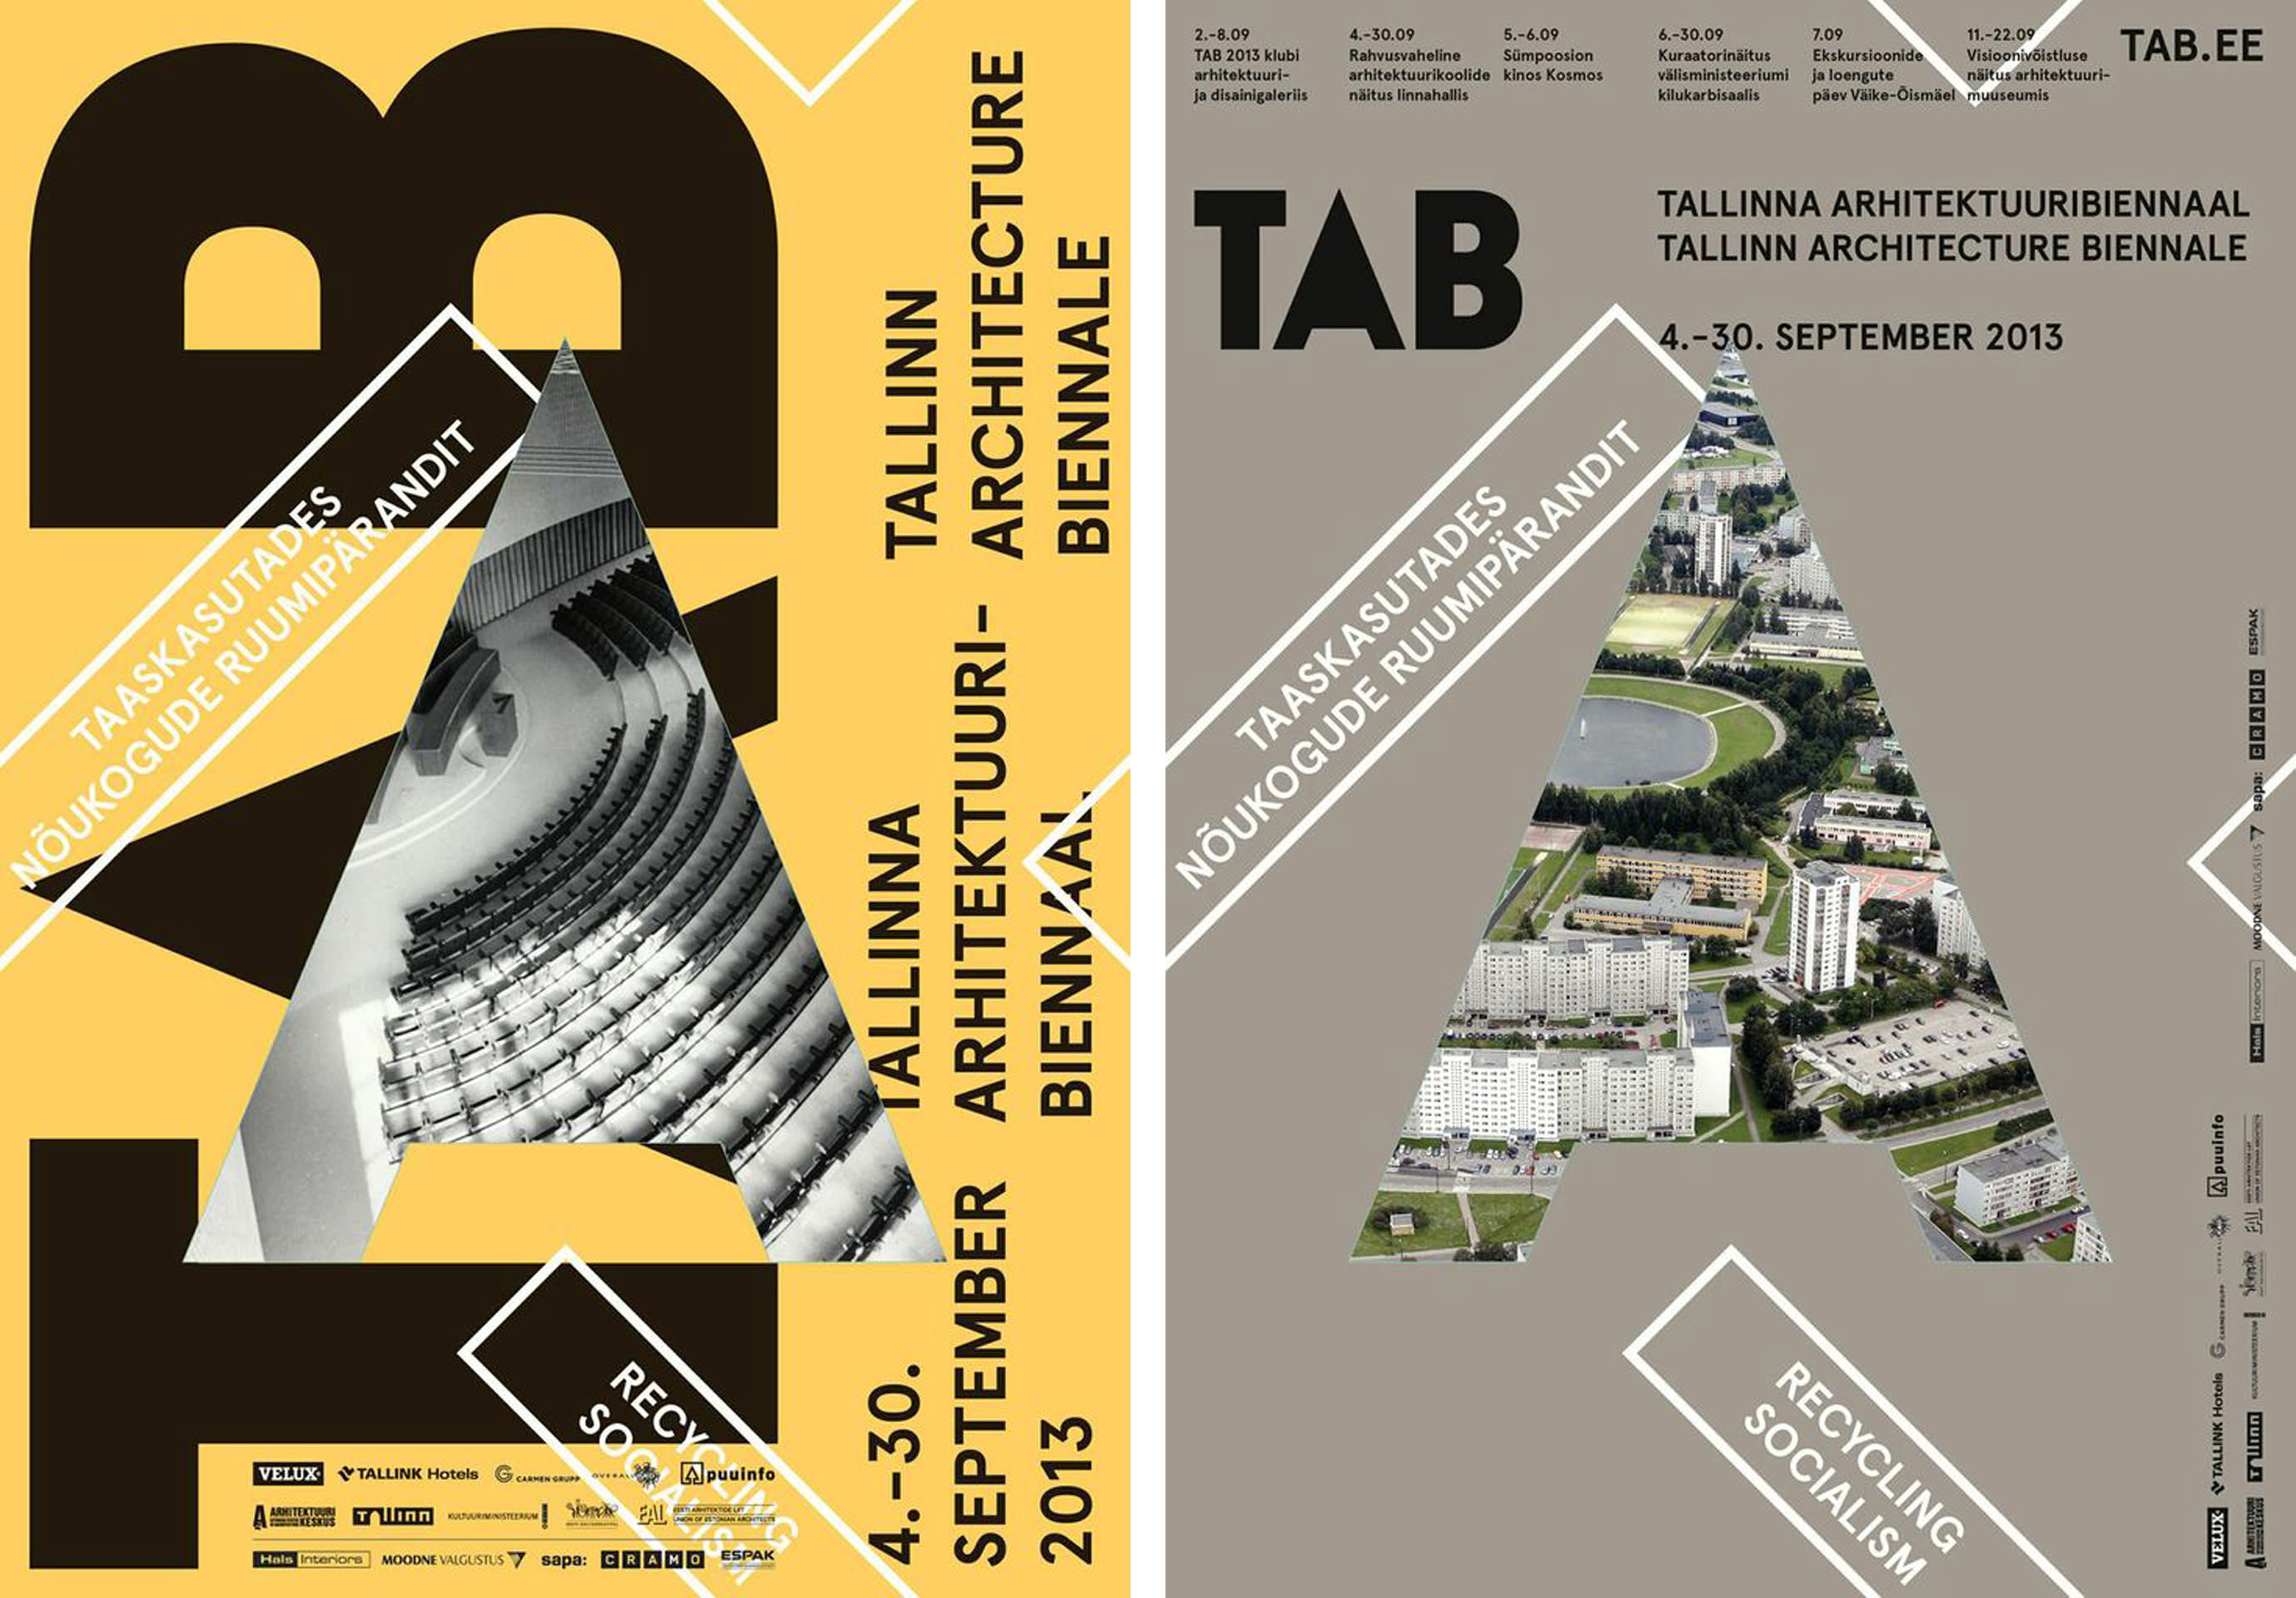 Poster design for architecture -  Recycling Socialism Nbsp Tallinn Architecture Biennale 2013 Posters Graphic Design